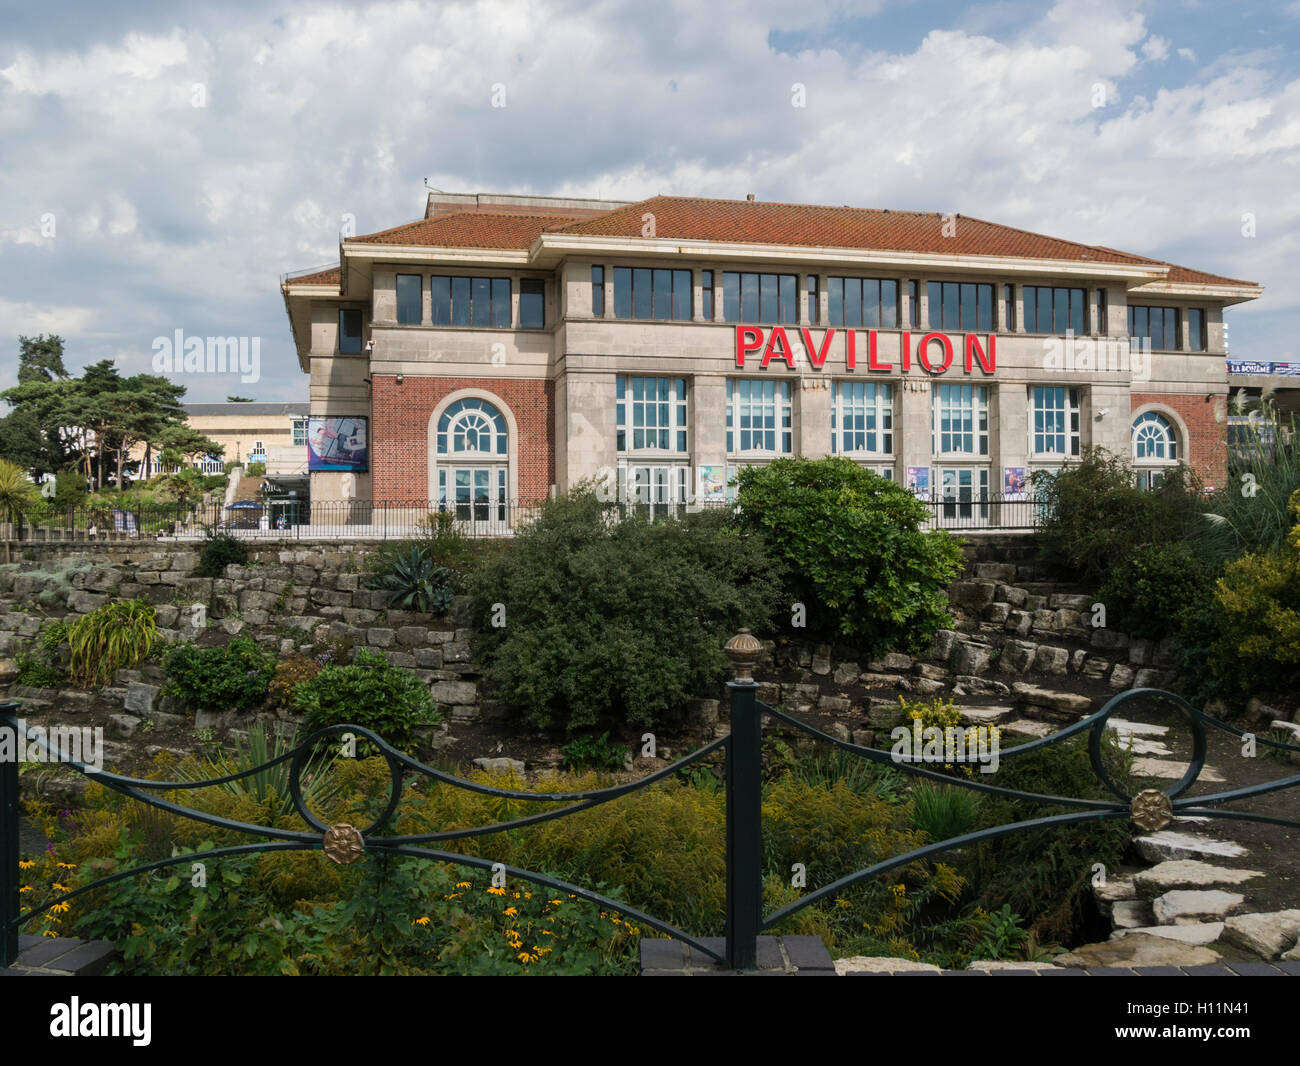 Bournemouth Pavilion Theatre from Lower Gardens Dorset England UK it has shows events and touring operas - Stock Image